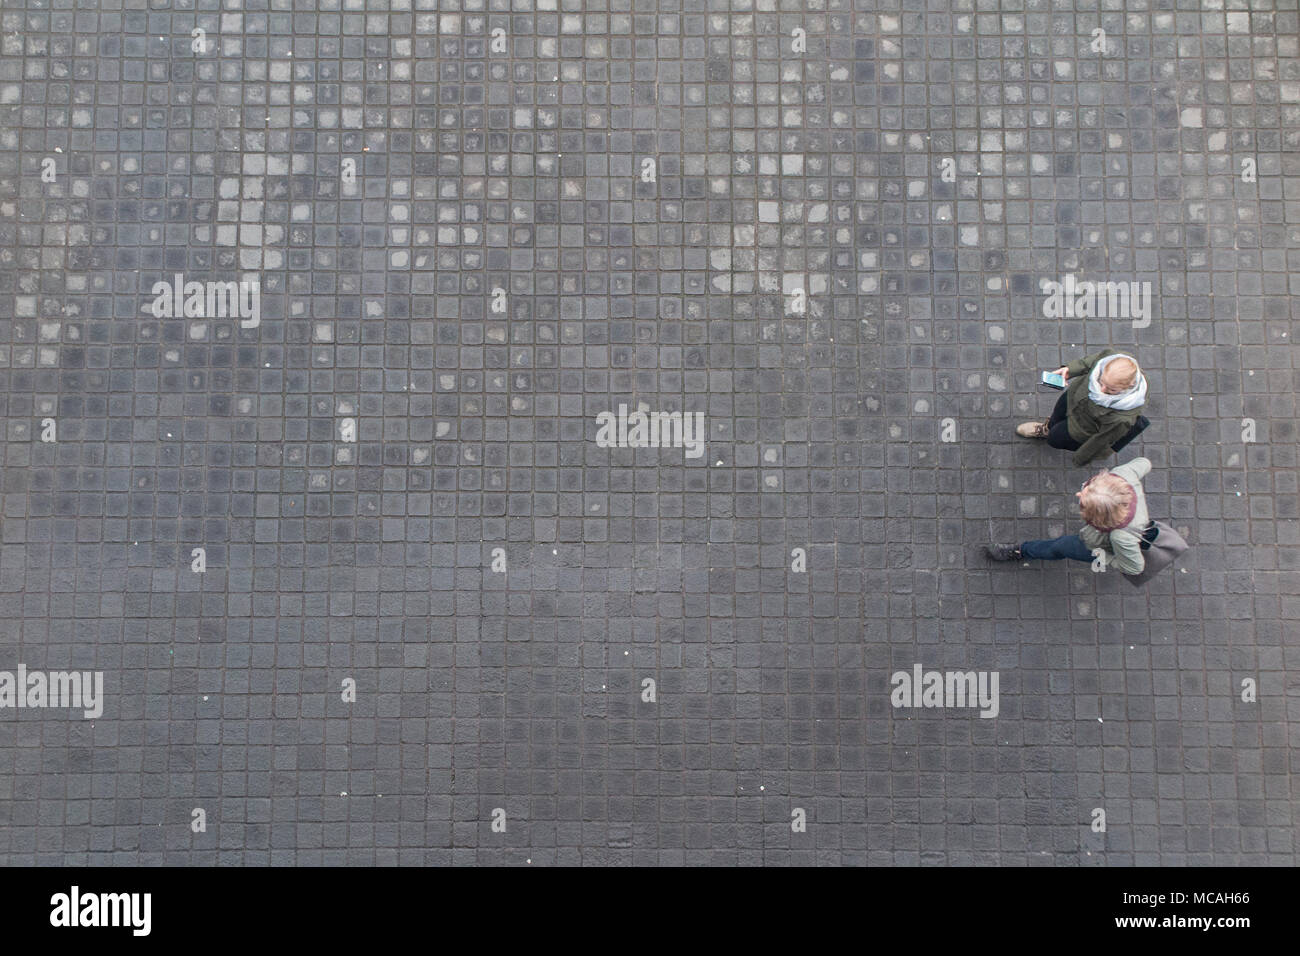 Looking down from high above on two pedestrians, walking along a cobbled pavement - Stock Image